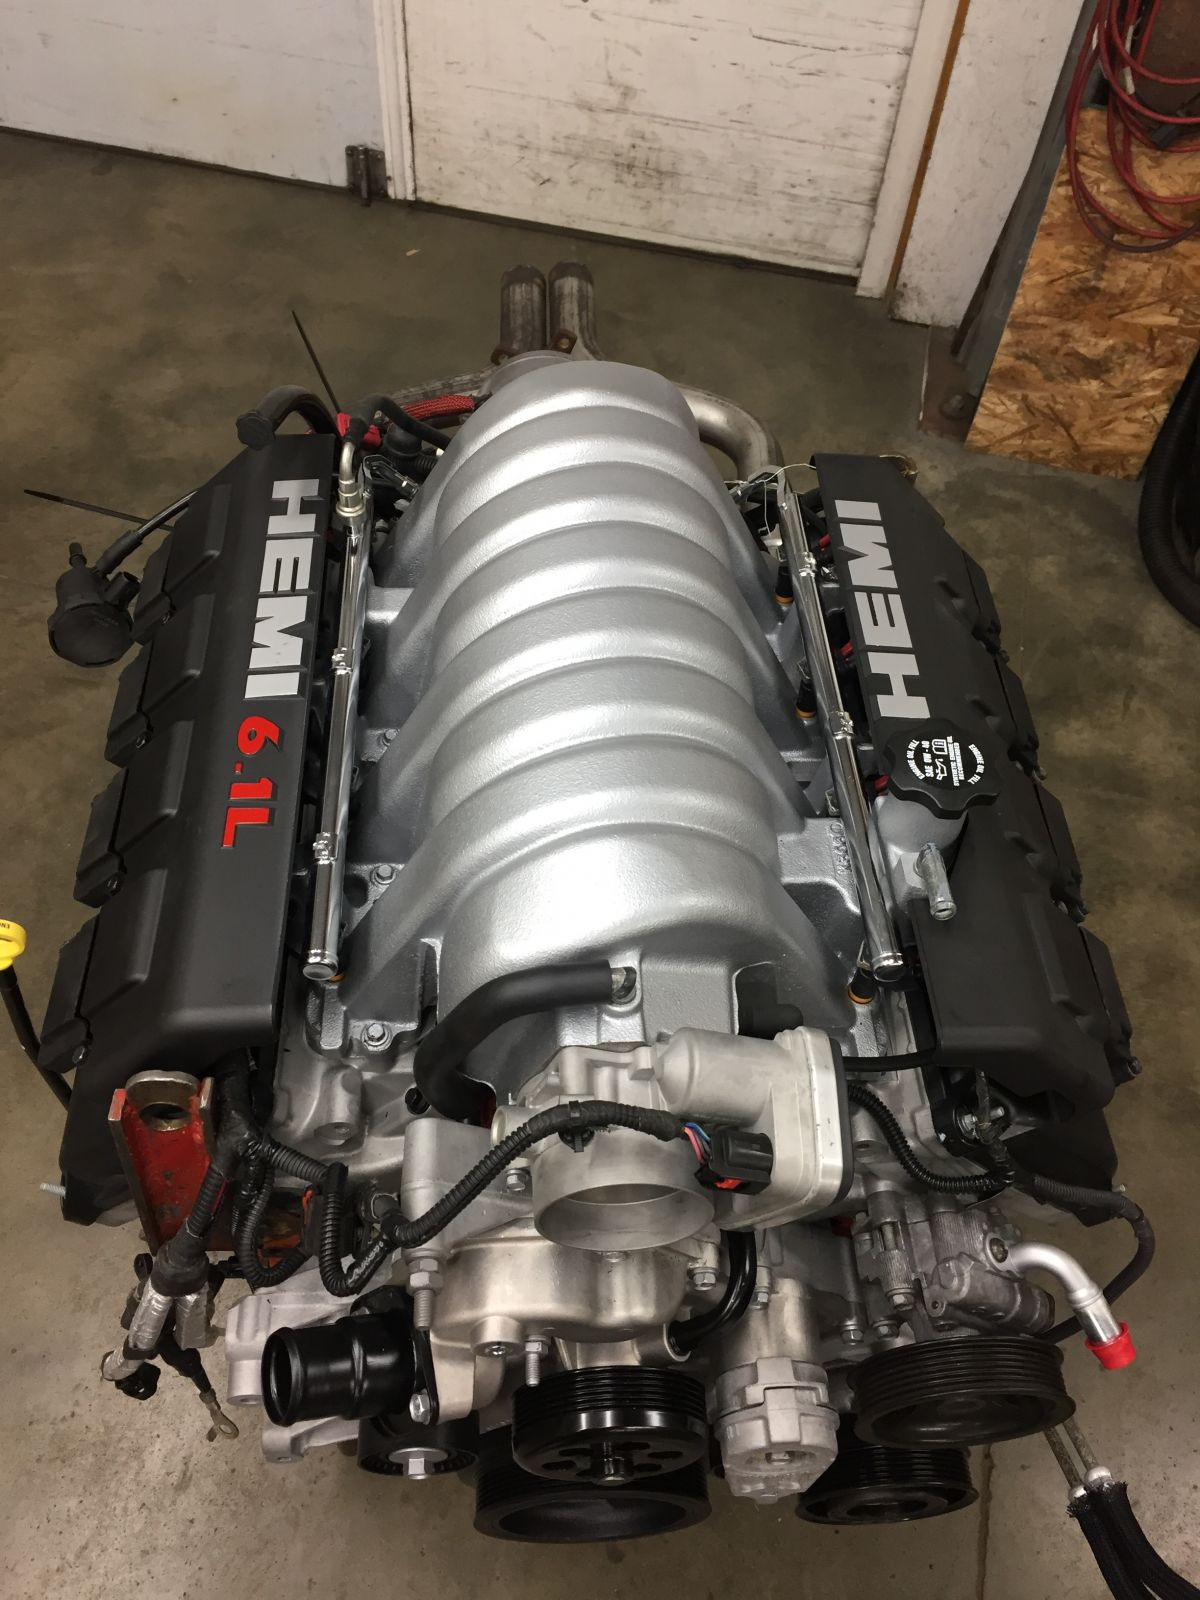 Ford F Flathead V as well Ep C besides Chevrolet Monte Carlo Ss Pro Touring Resto Mod likewise Willys Cj A Jeep  plete Engine Rebuild likewise Hqdefault. on transmission rebuild manual